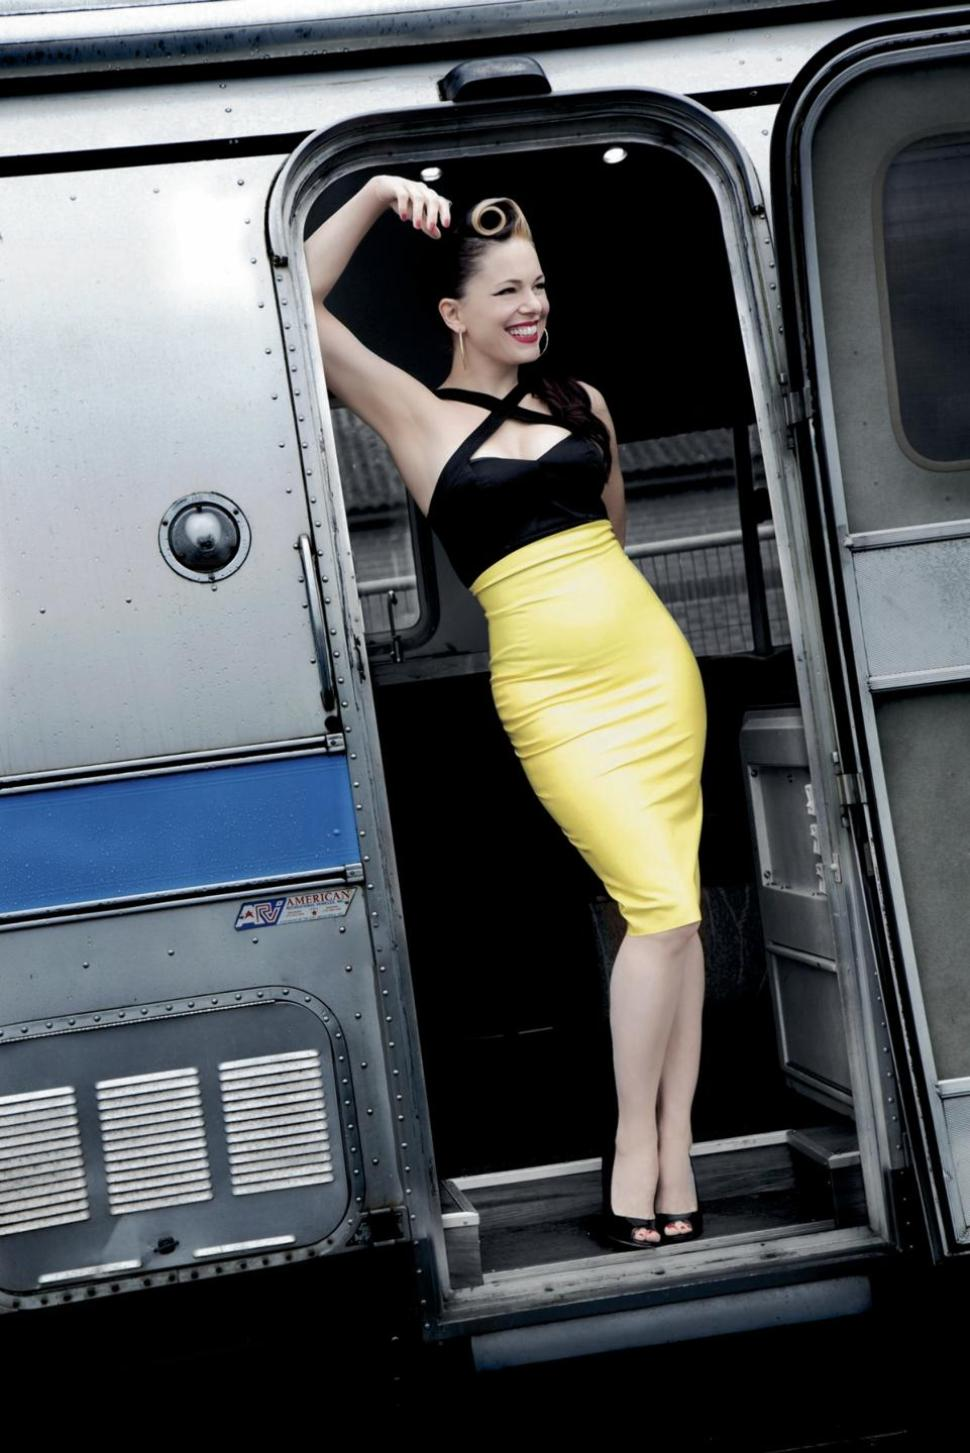 Imelda May brings back the pound and swing of rockabilly